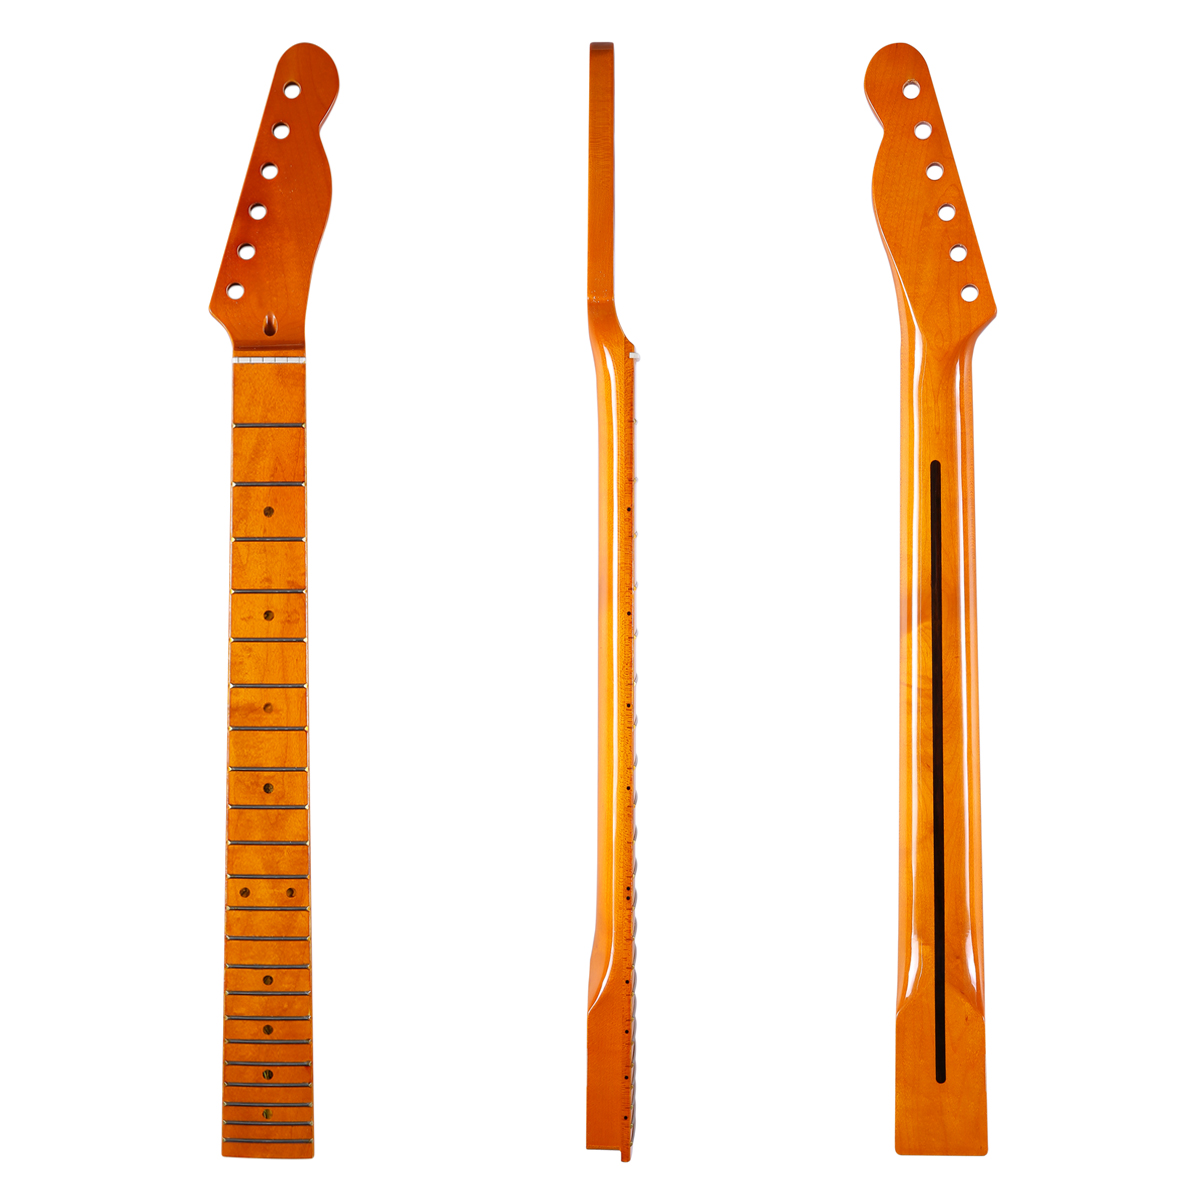 KAISH 22 Fret Glossy Tele Canadian Maple Guitar Neck Maple Fingerboard Abalone Shell Inlay Bone Nut for Telecaster kaish 2x neck